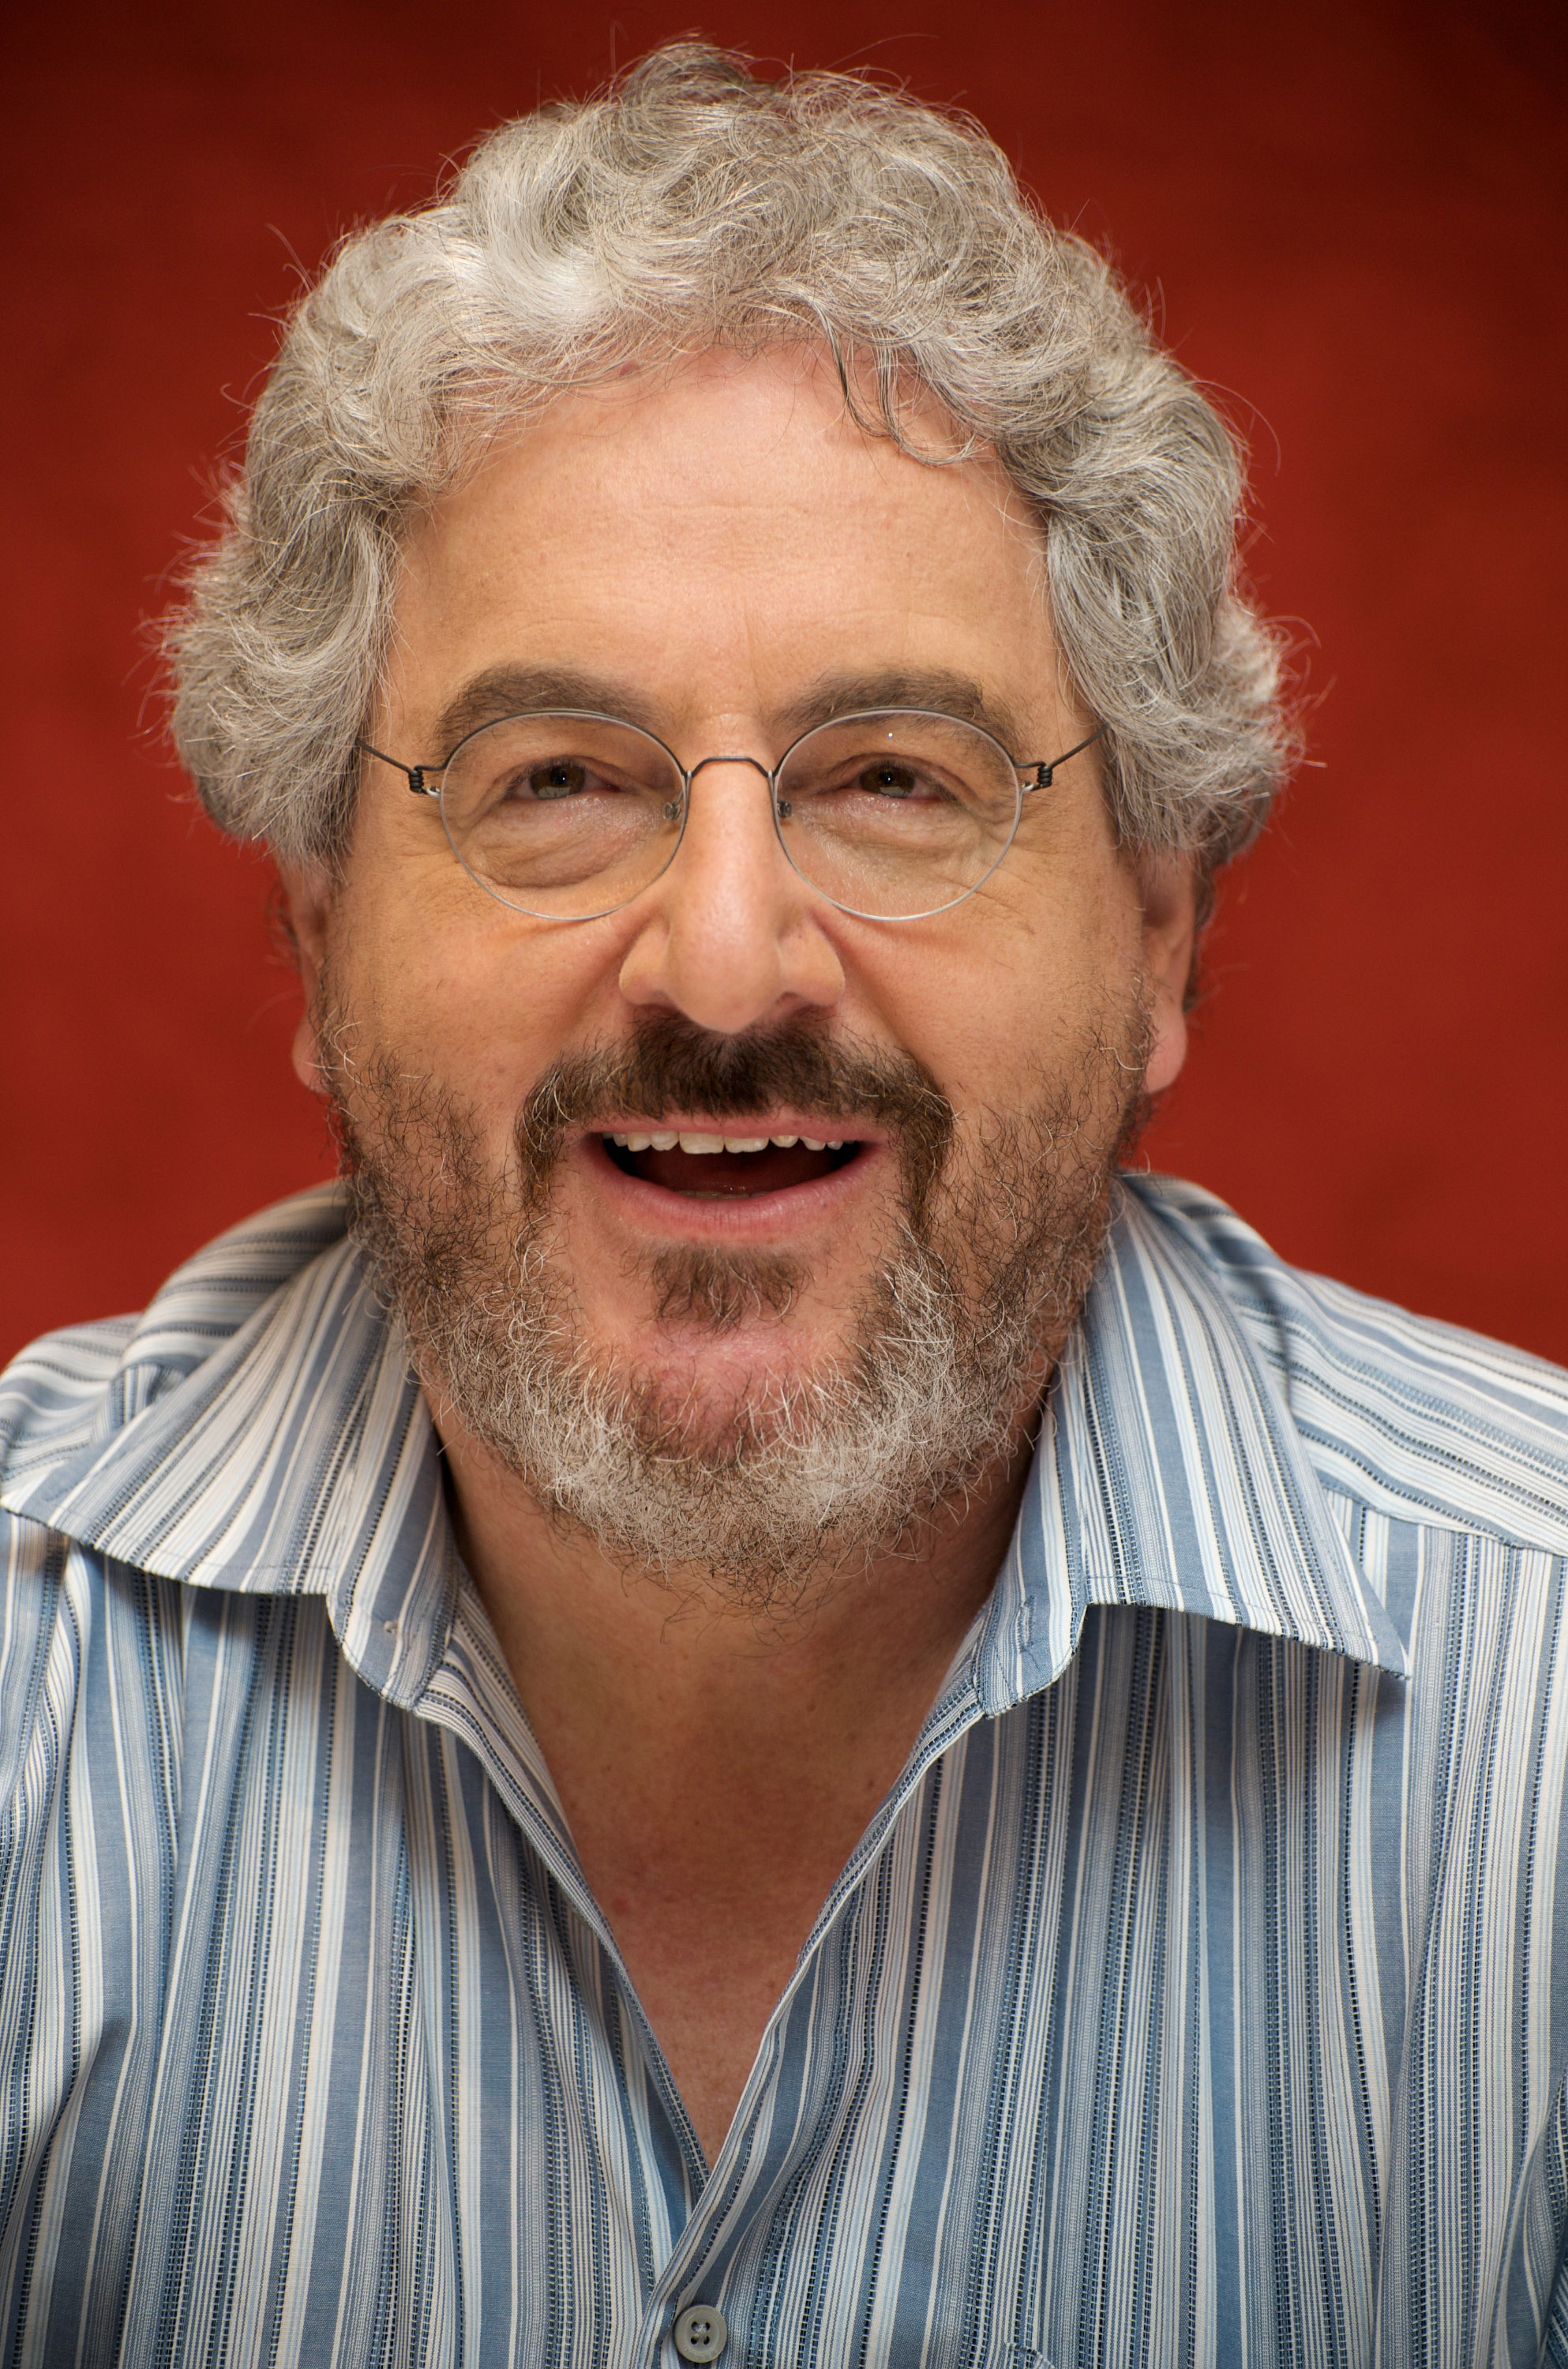 Director Harold Ramis at the  Year One  press conference at the Ritz Carlton Hotel on June 13, 2009 in New York City.